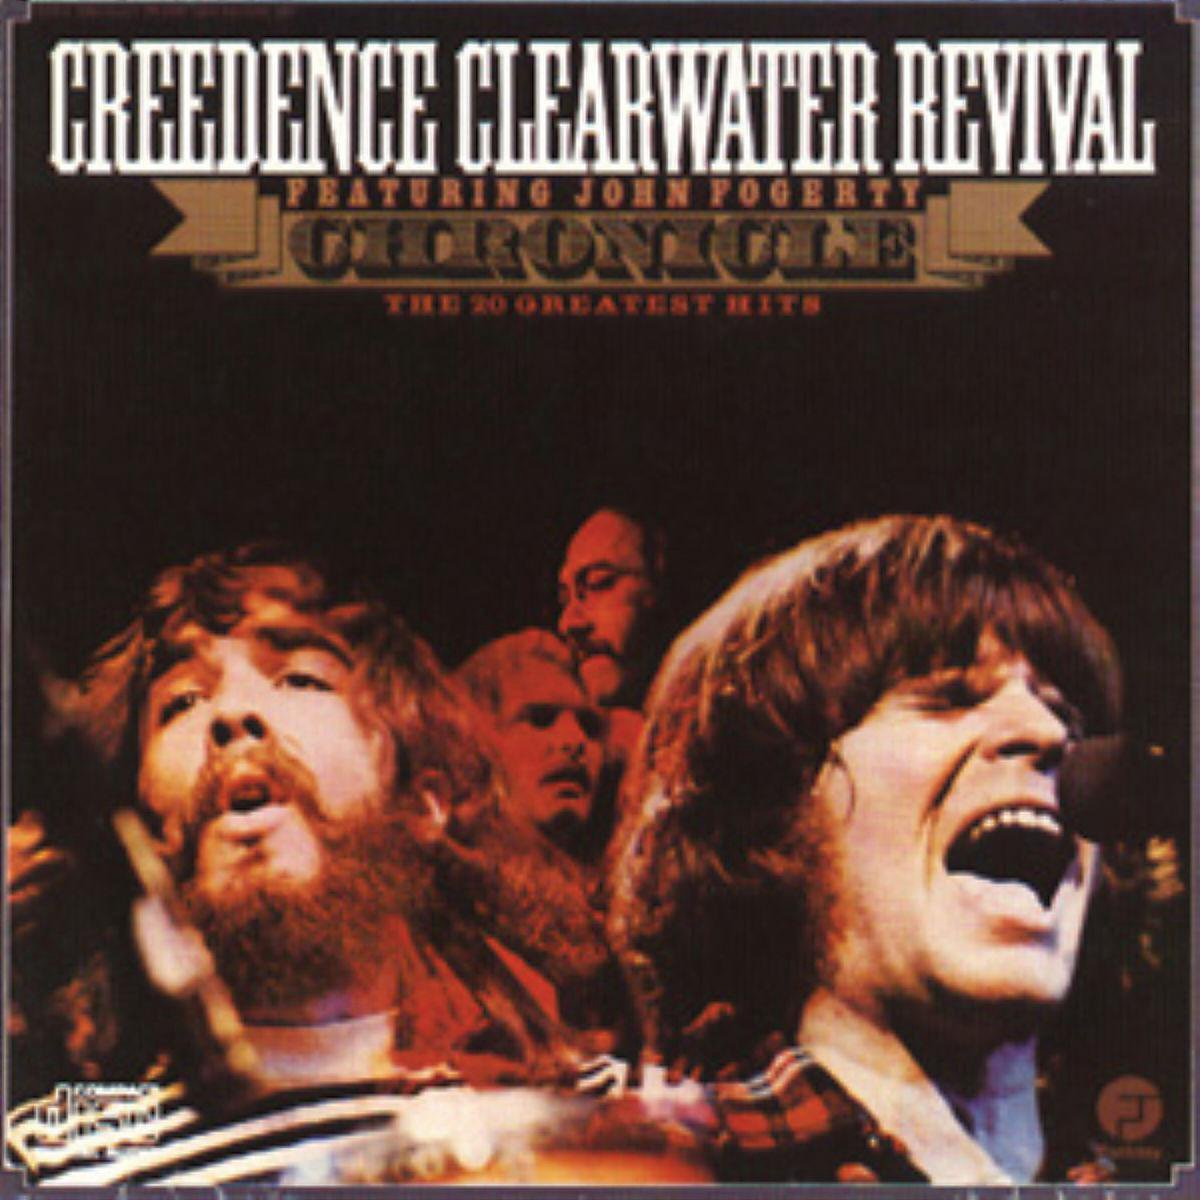 Chronicle: 20 Greatest Hits - Creedence Clearwater Revival